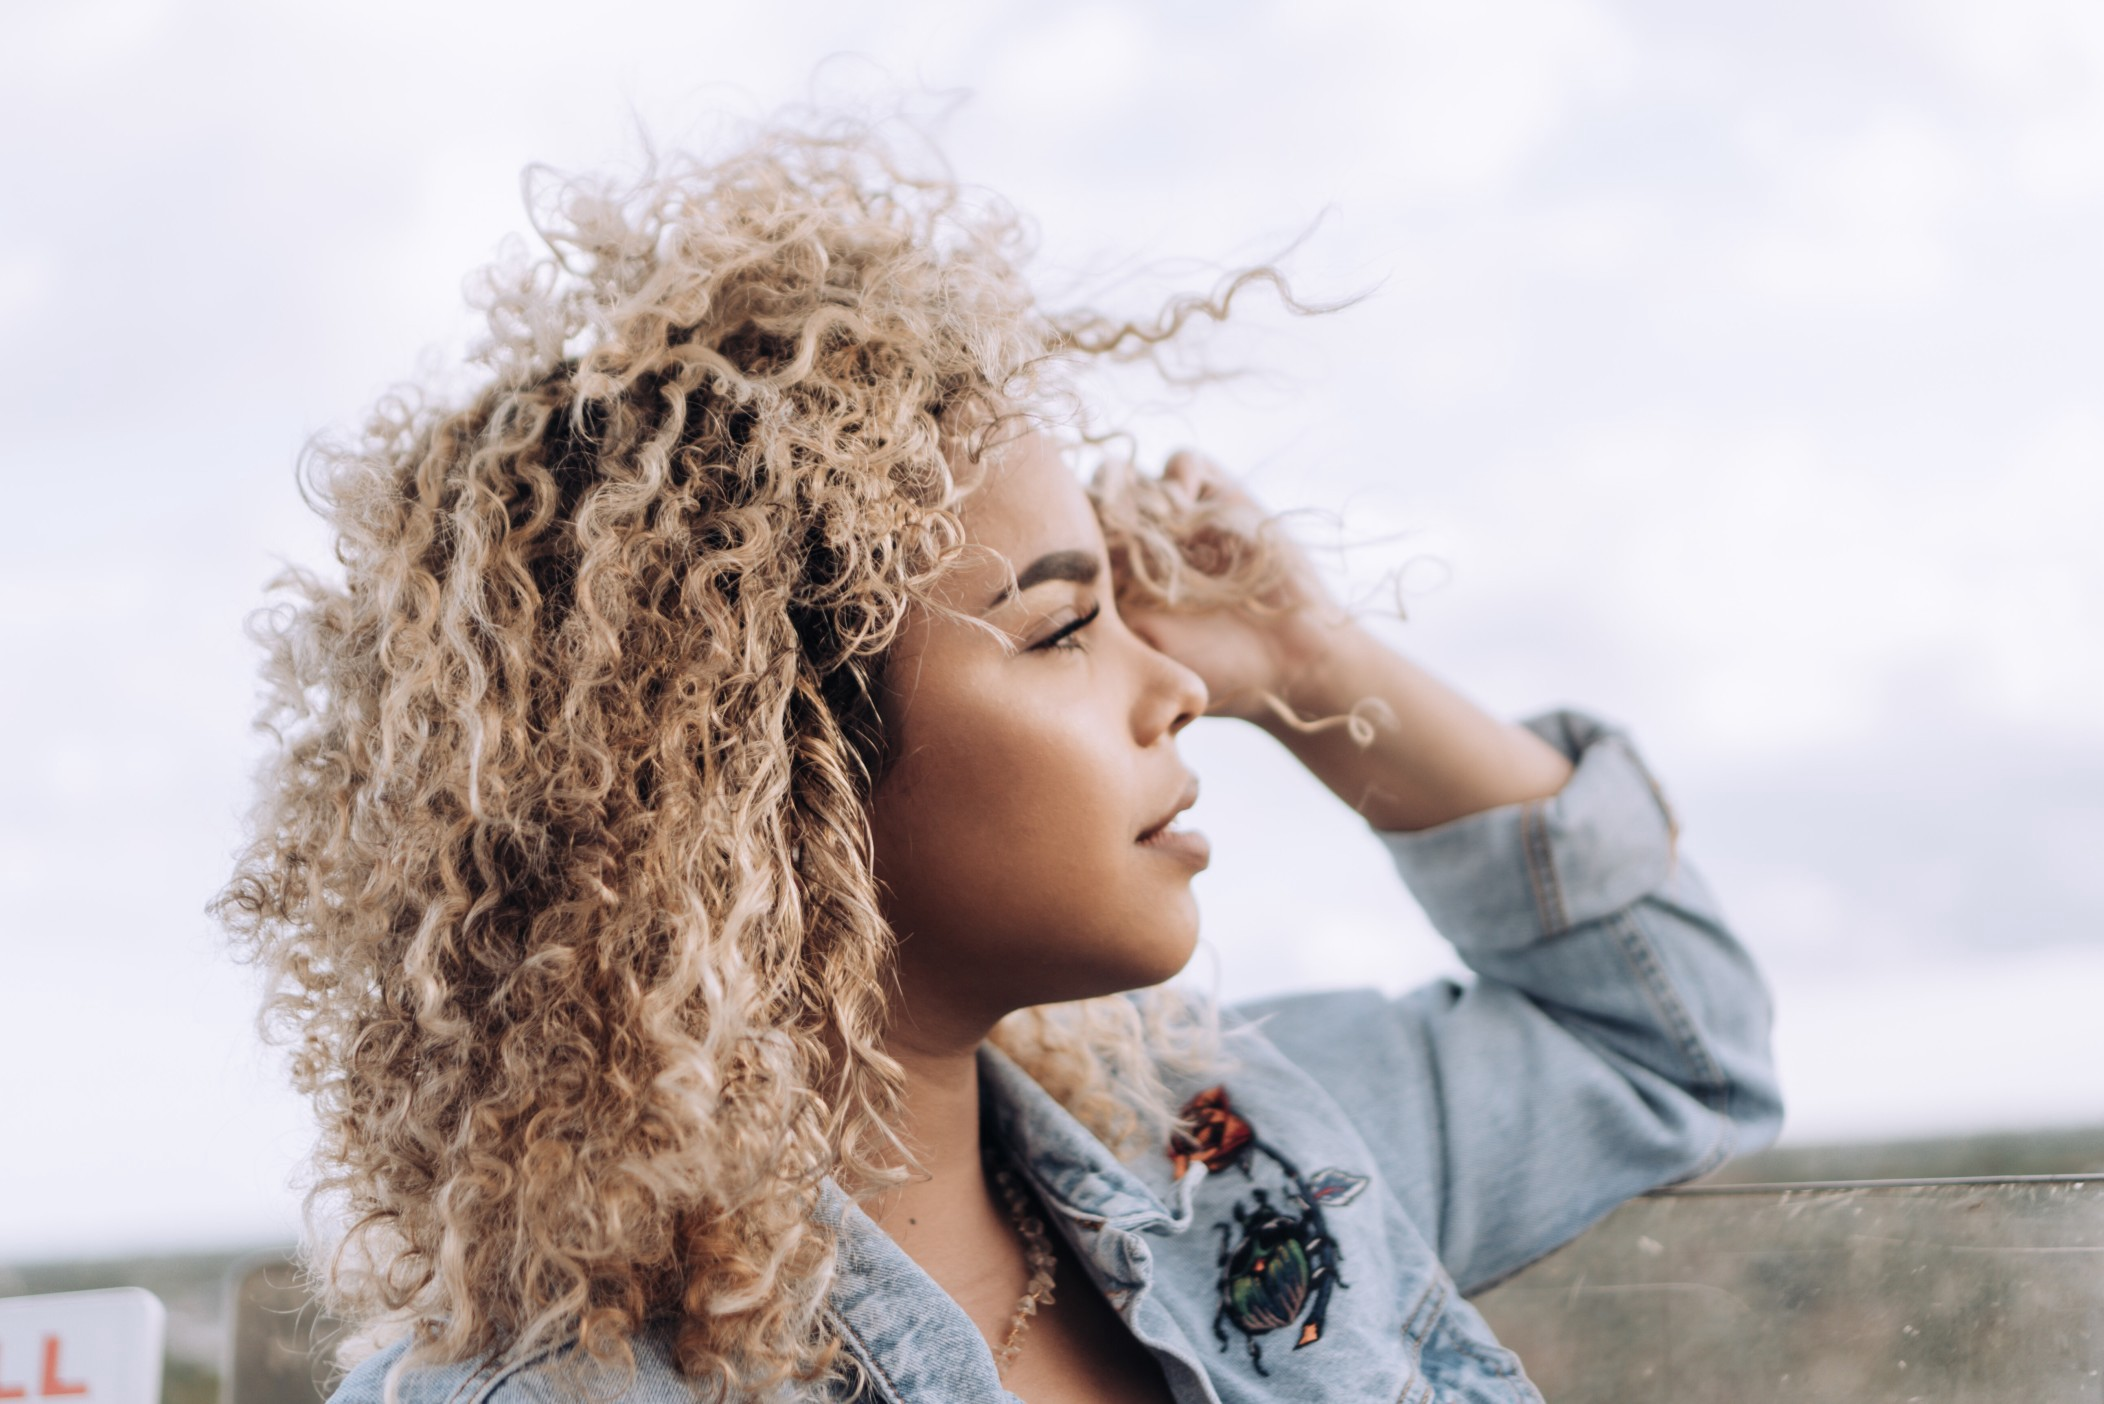 A woman with curly blonde hair stares into the distance hopefully.